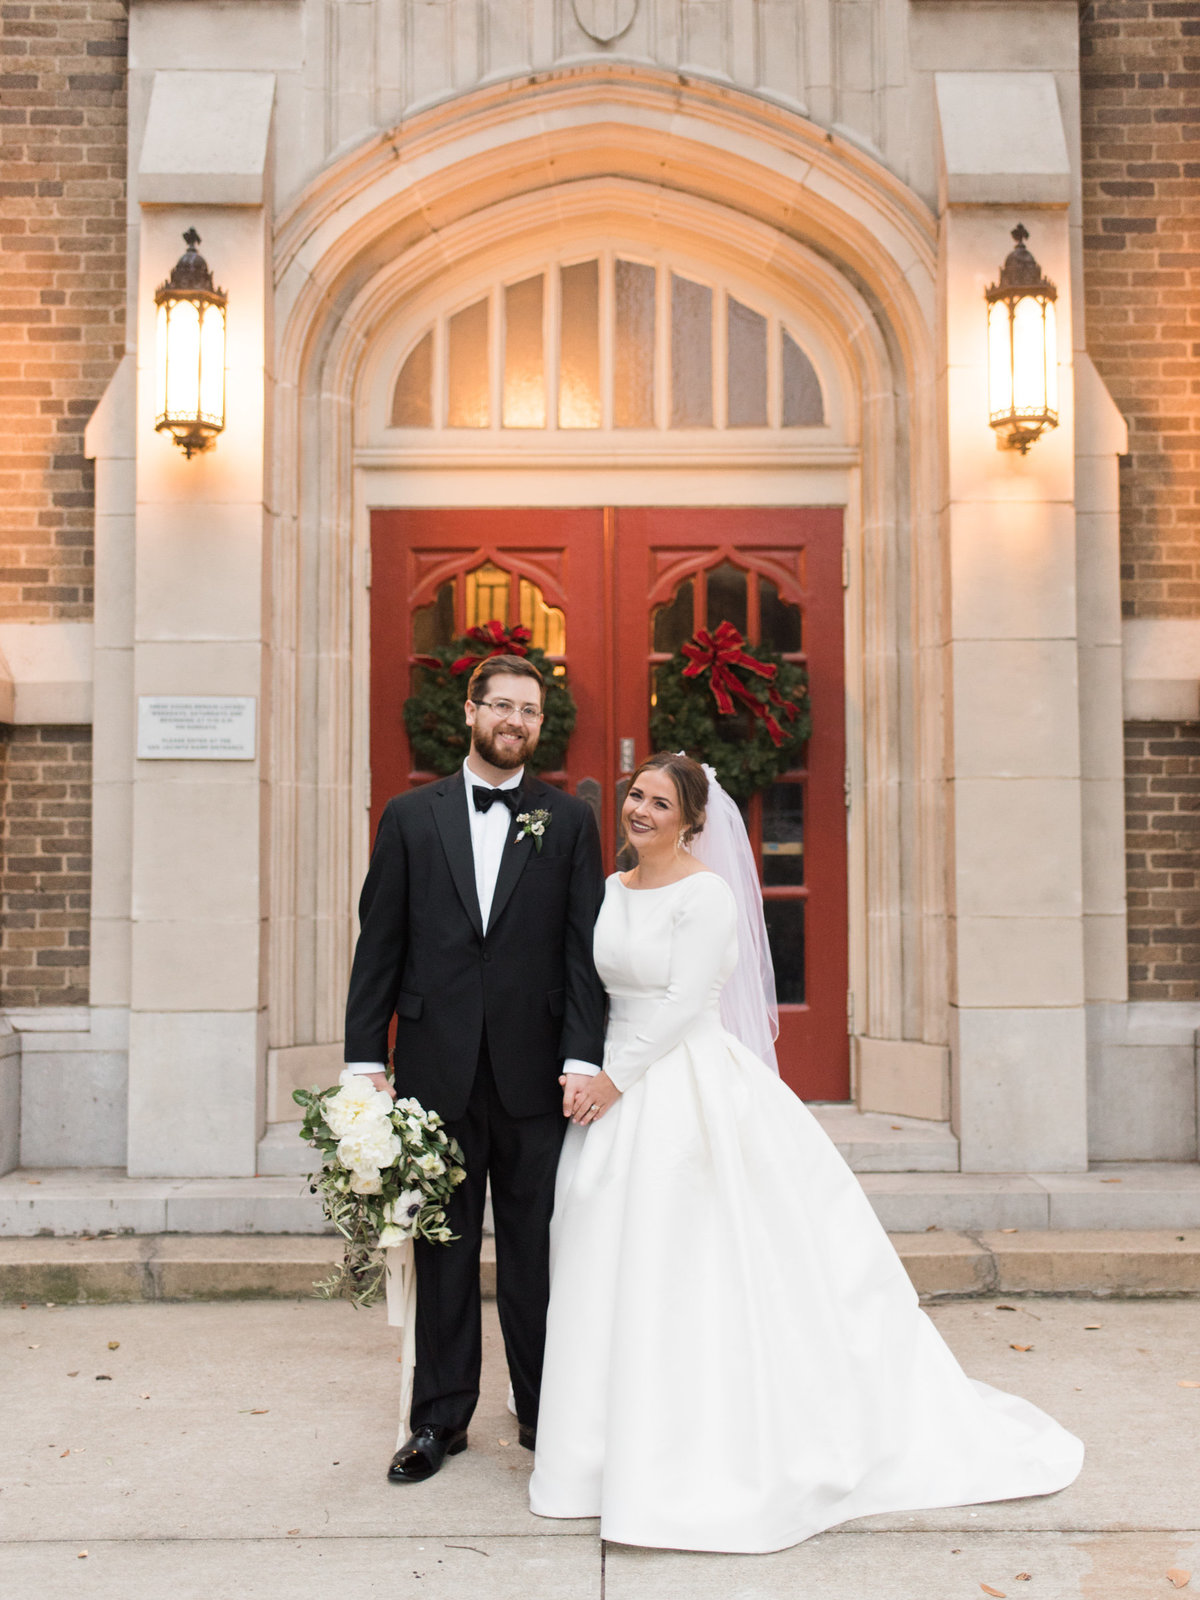 Courtney Hanson Photography - Festive Holiday Wedding in Dallas at Hickory Street Annex-0225